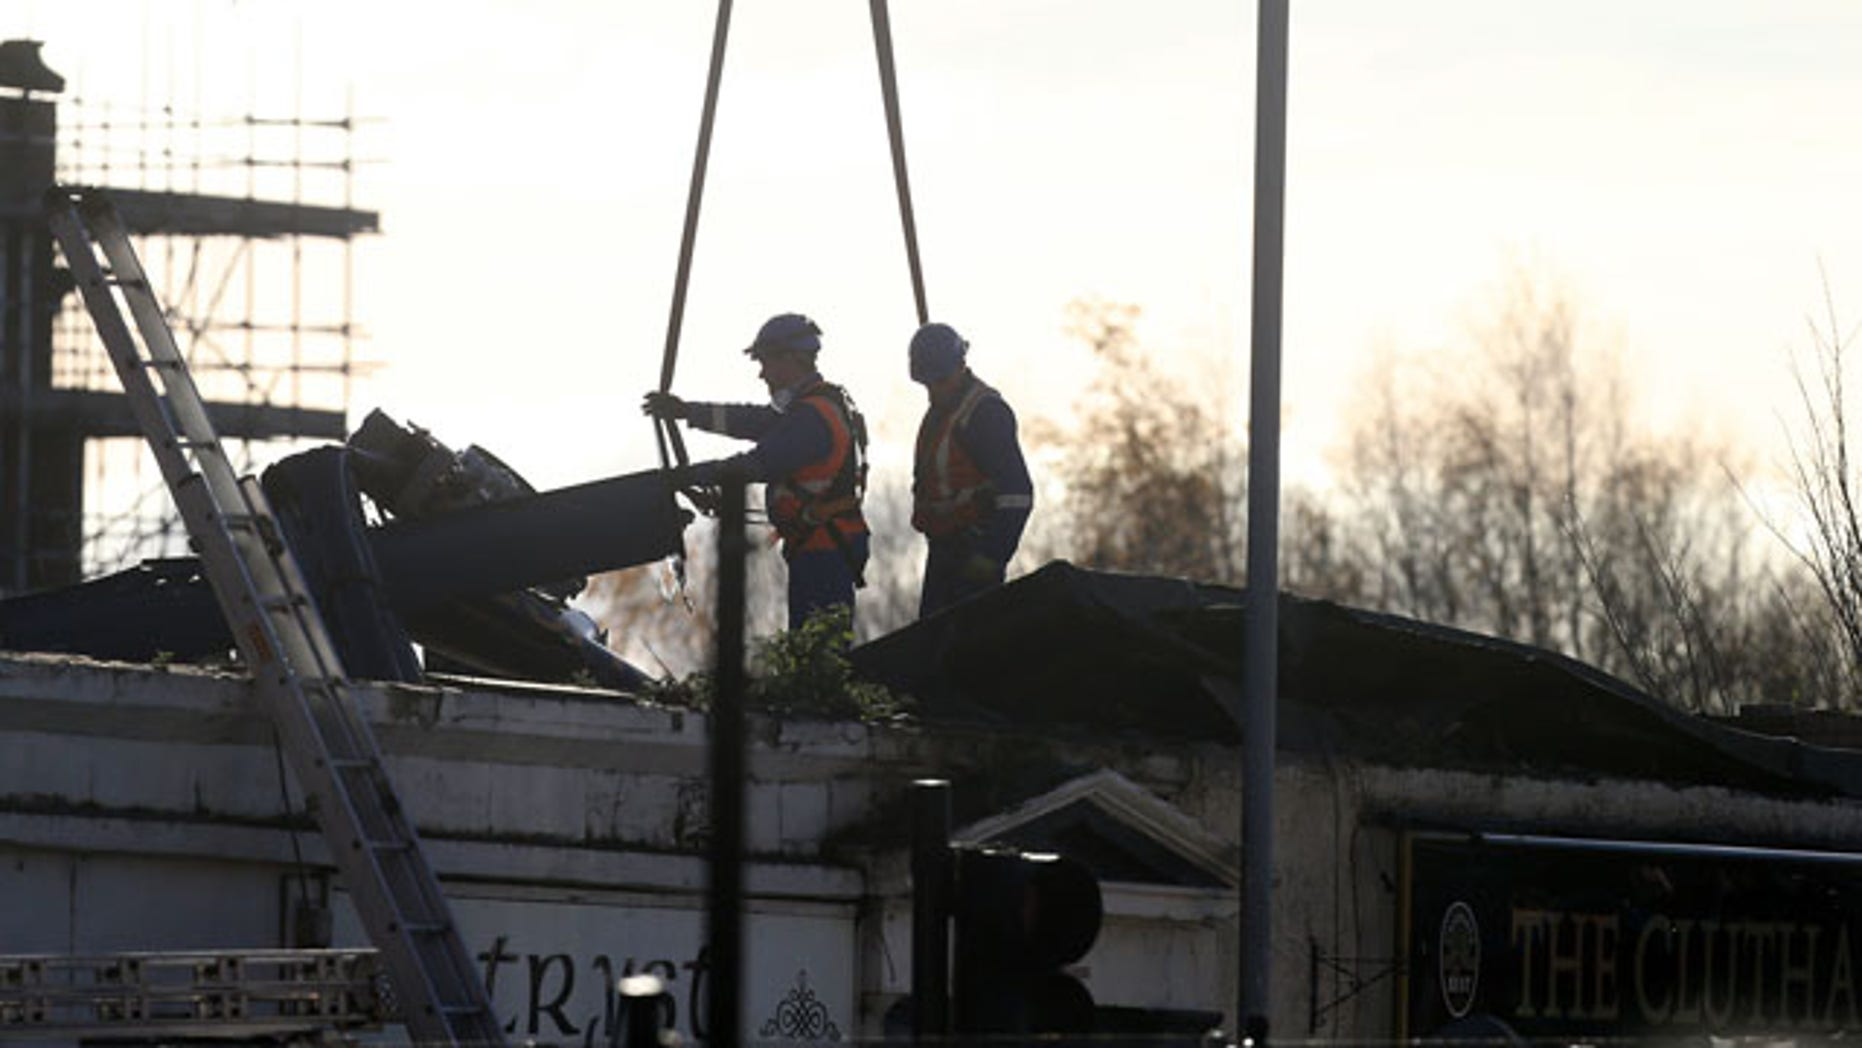 December 1, 2013: Scottish Fire and Rescue services look on at a section of the helicopter being lifted from the scene following the helicopter crash at the Clutha Bar in Glasgow, Scotland. (AP Photo)